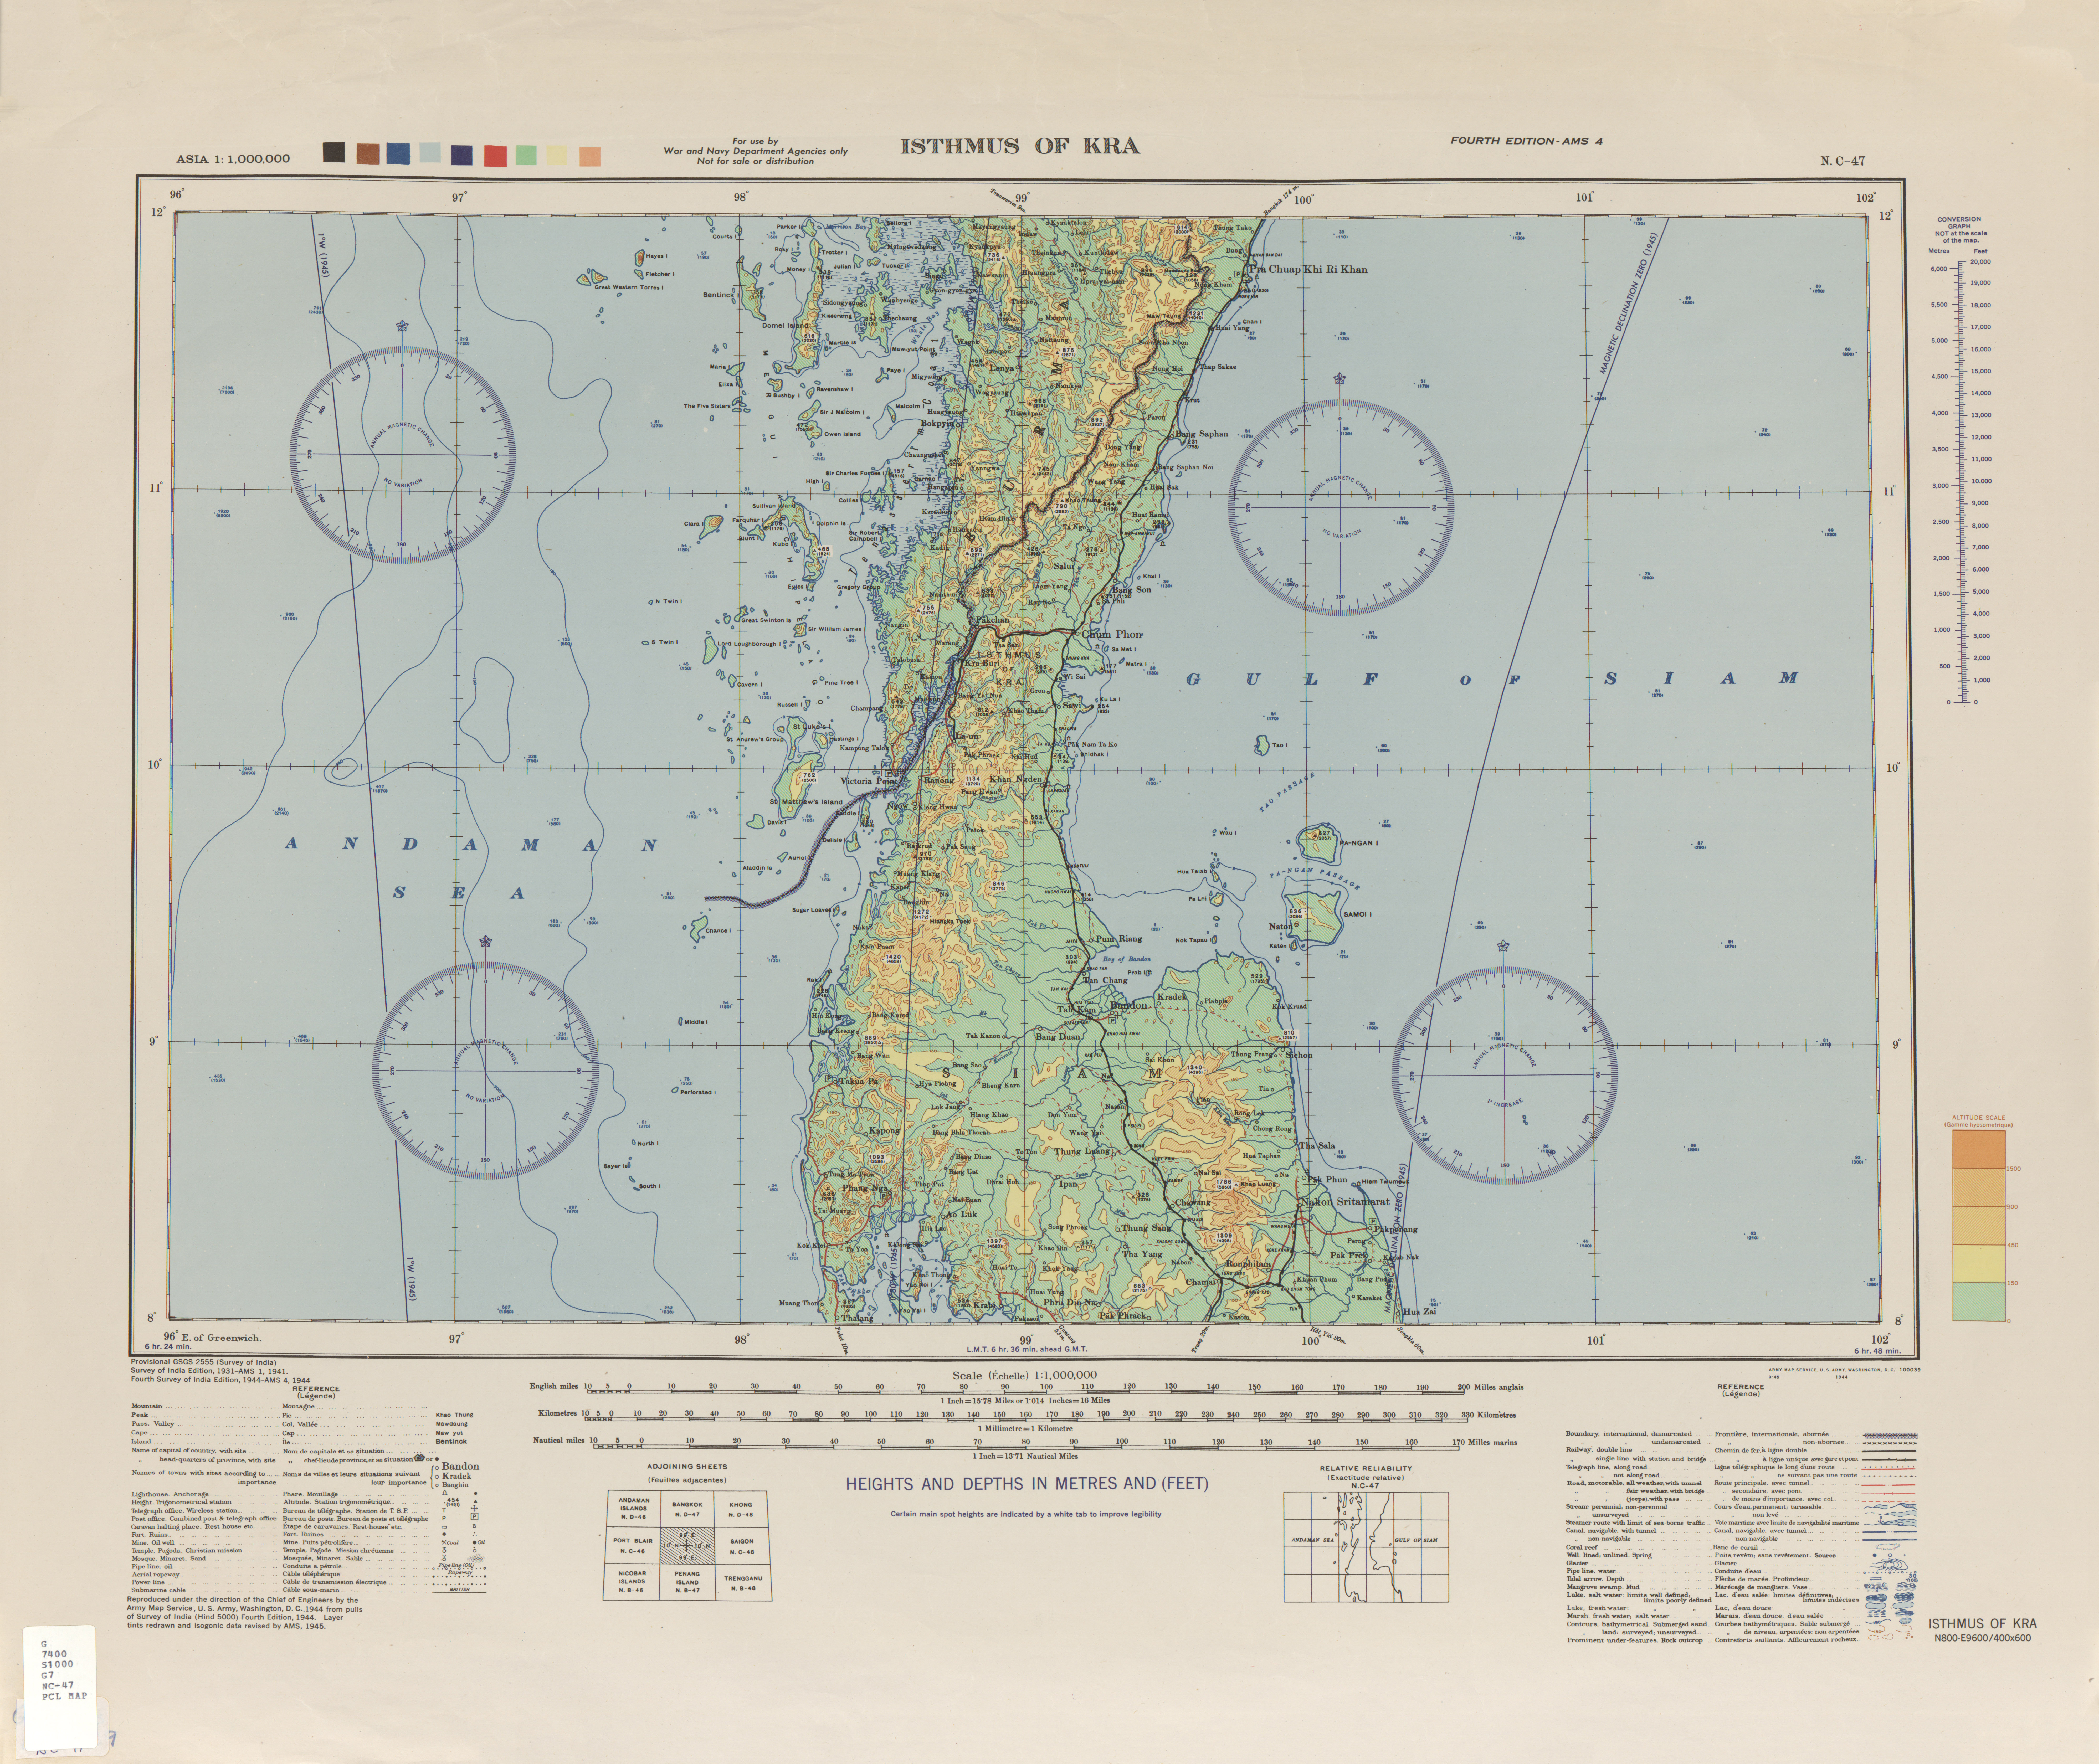 Asia AMS Topographic Maps - Perry-Castañeda Map Collection ... Isthmus Of Kra Map on isthmus of corinth map, isthmus of kra southeast asia, thai canal, phang nga province, surat thani, kra canal map, kra isthmus located on the map, kra buri river map, isthmus of burma, isthmus of kra 200 bce, plateau of mexico map, isthmus of panama map, isthmus of panama, malay peninsula, isthmus of thailand, isthmus of suez map, isthmus of tehuantepec on map, isthmus of corinth, isthmus panama on map, isthmus of darien map, isthmus of tehuantepec, krabi province, trang province, tapi river, thailand,